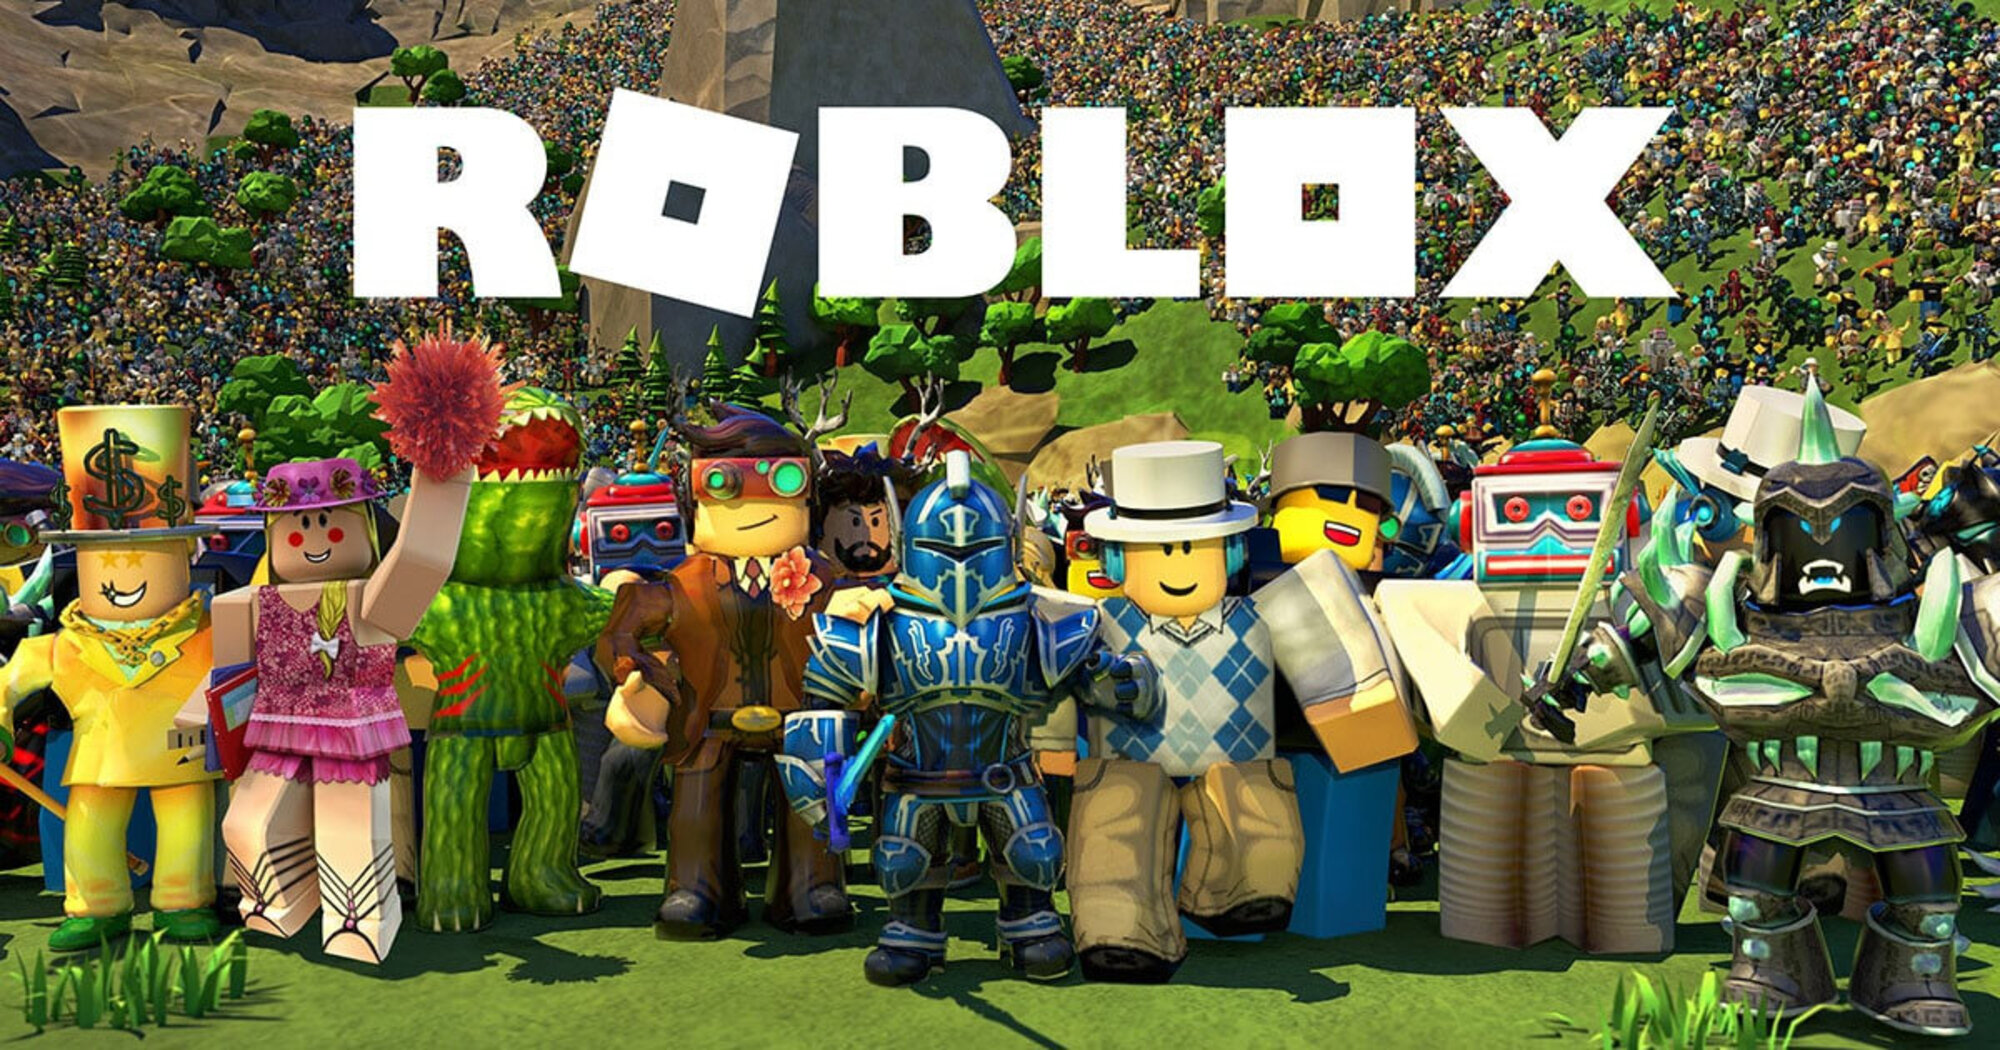 Inappropriate Roblox Group Images Porn Swearing More Are Roblox Hackers Ruining The Kids Game Film Daily